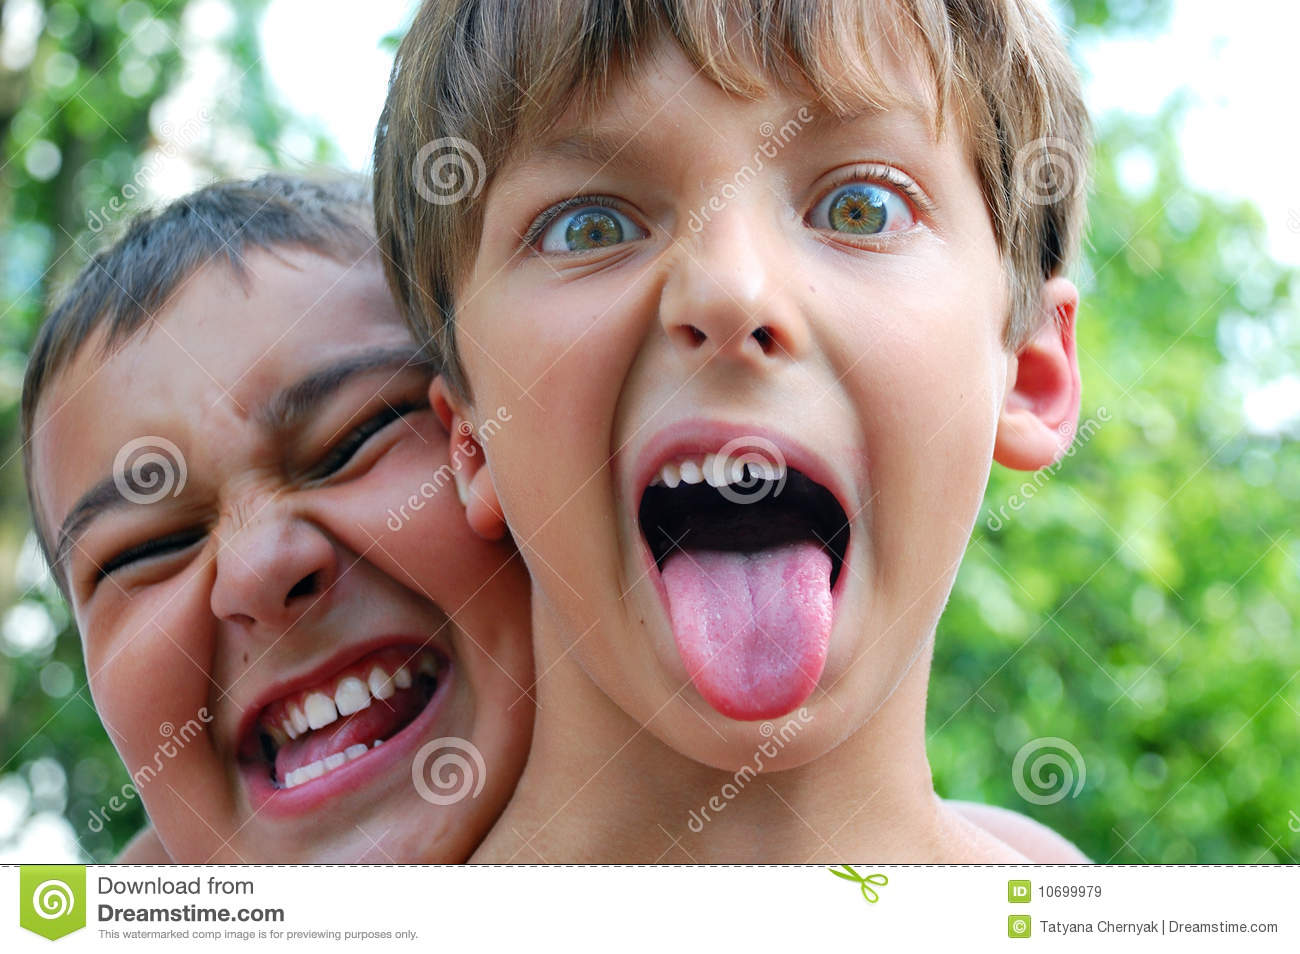 Crazy Funny Children Faces Royalty Free Stock Images - Image: 10699979